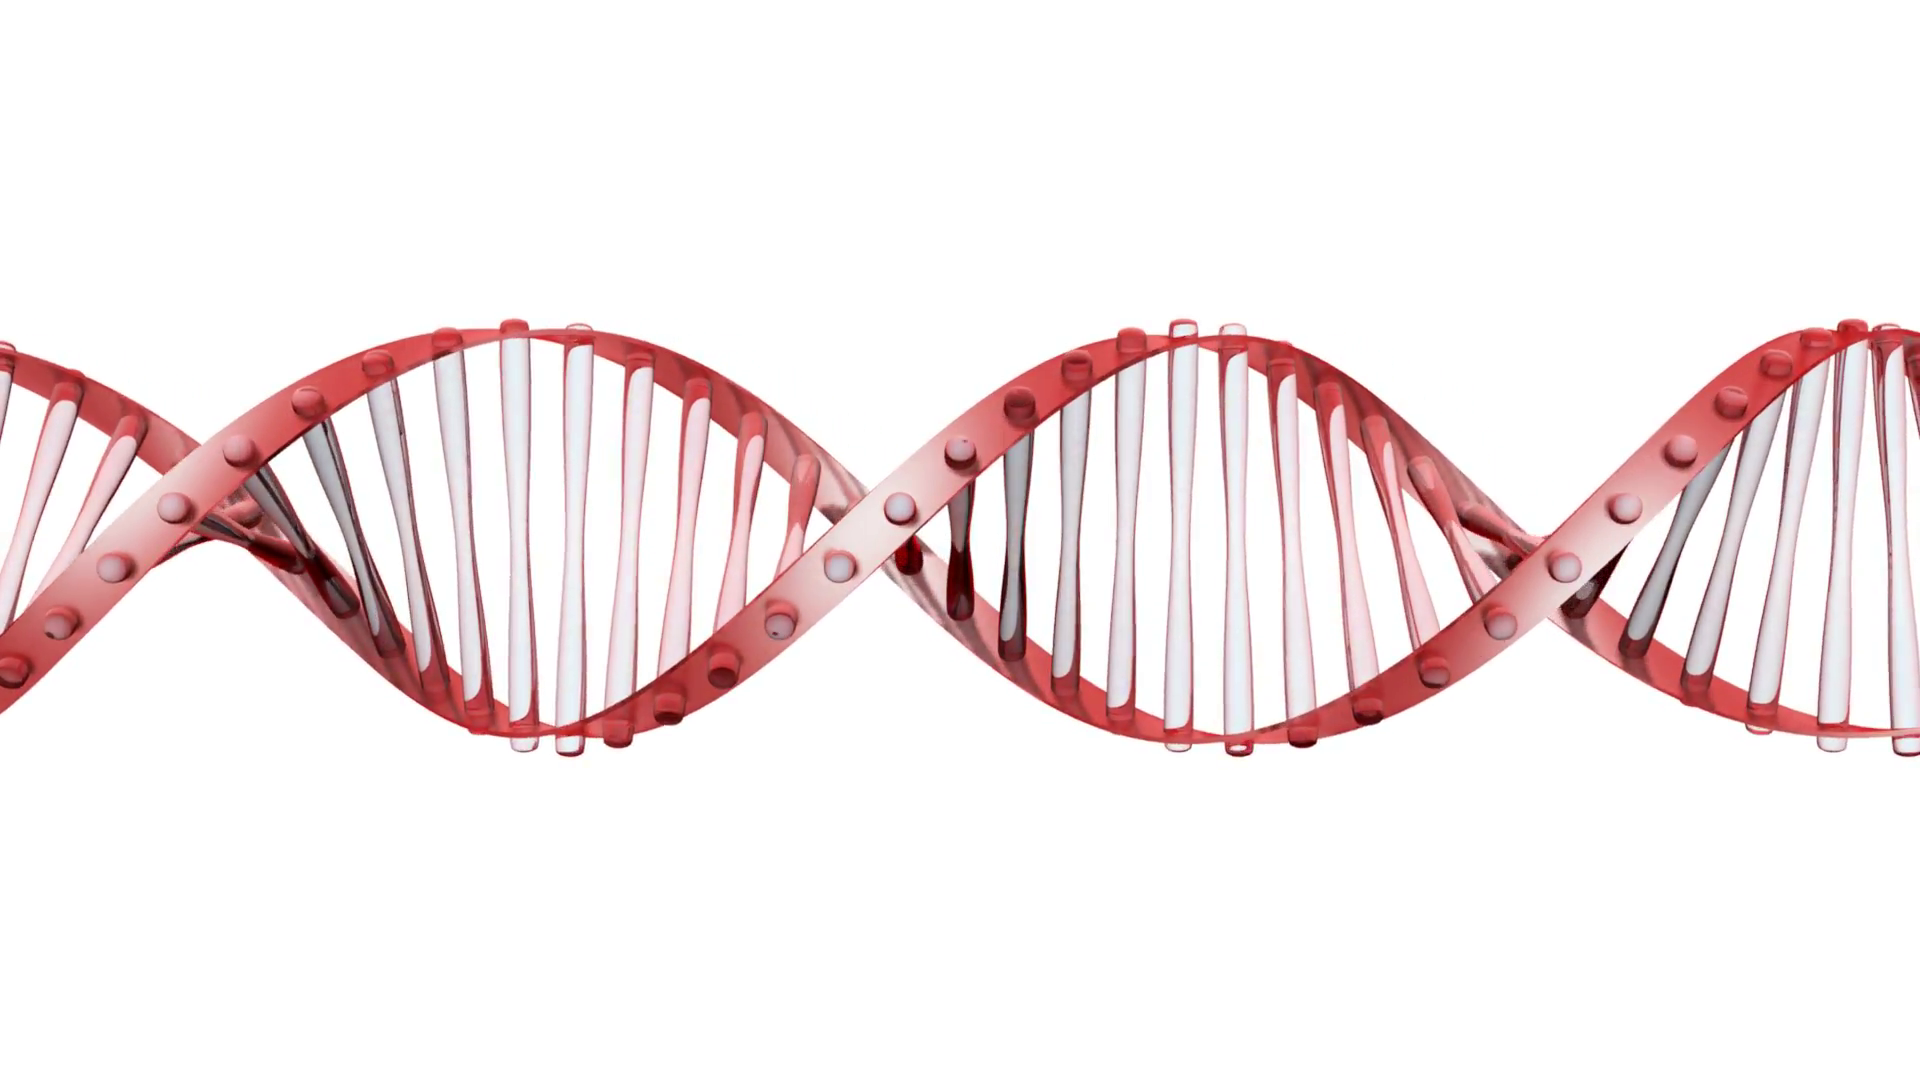 Dna Png Animation & Free Dna Animation.png Transparent Images #6016.